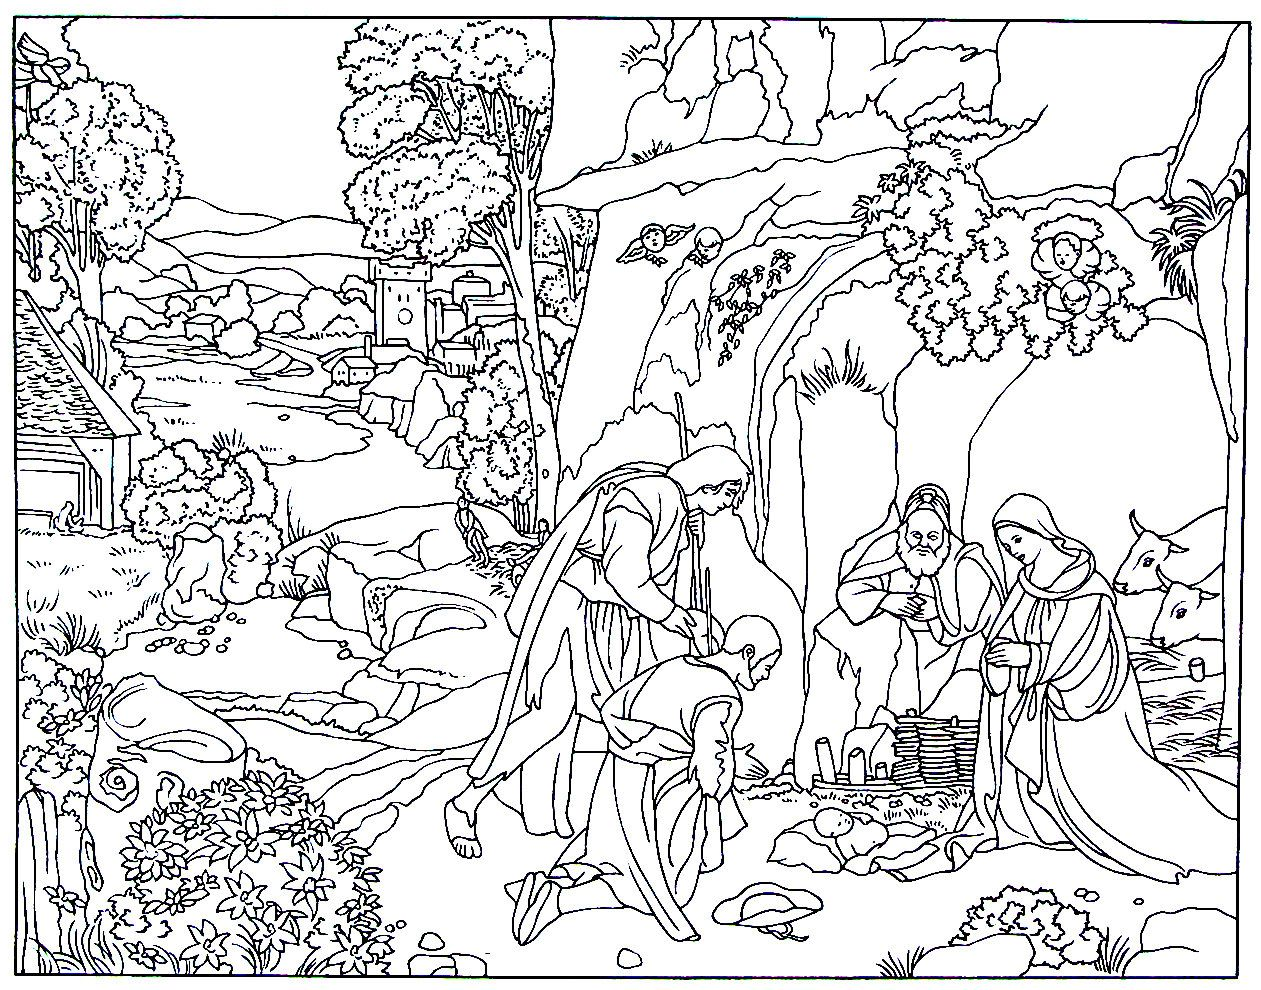 The Adoration Of The Shepherds Renaissance Painting By Giorgione Printable Coloring Book Page